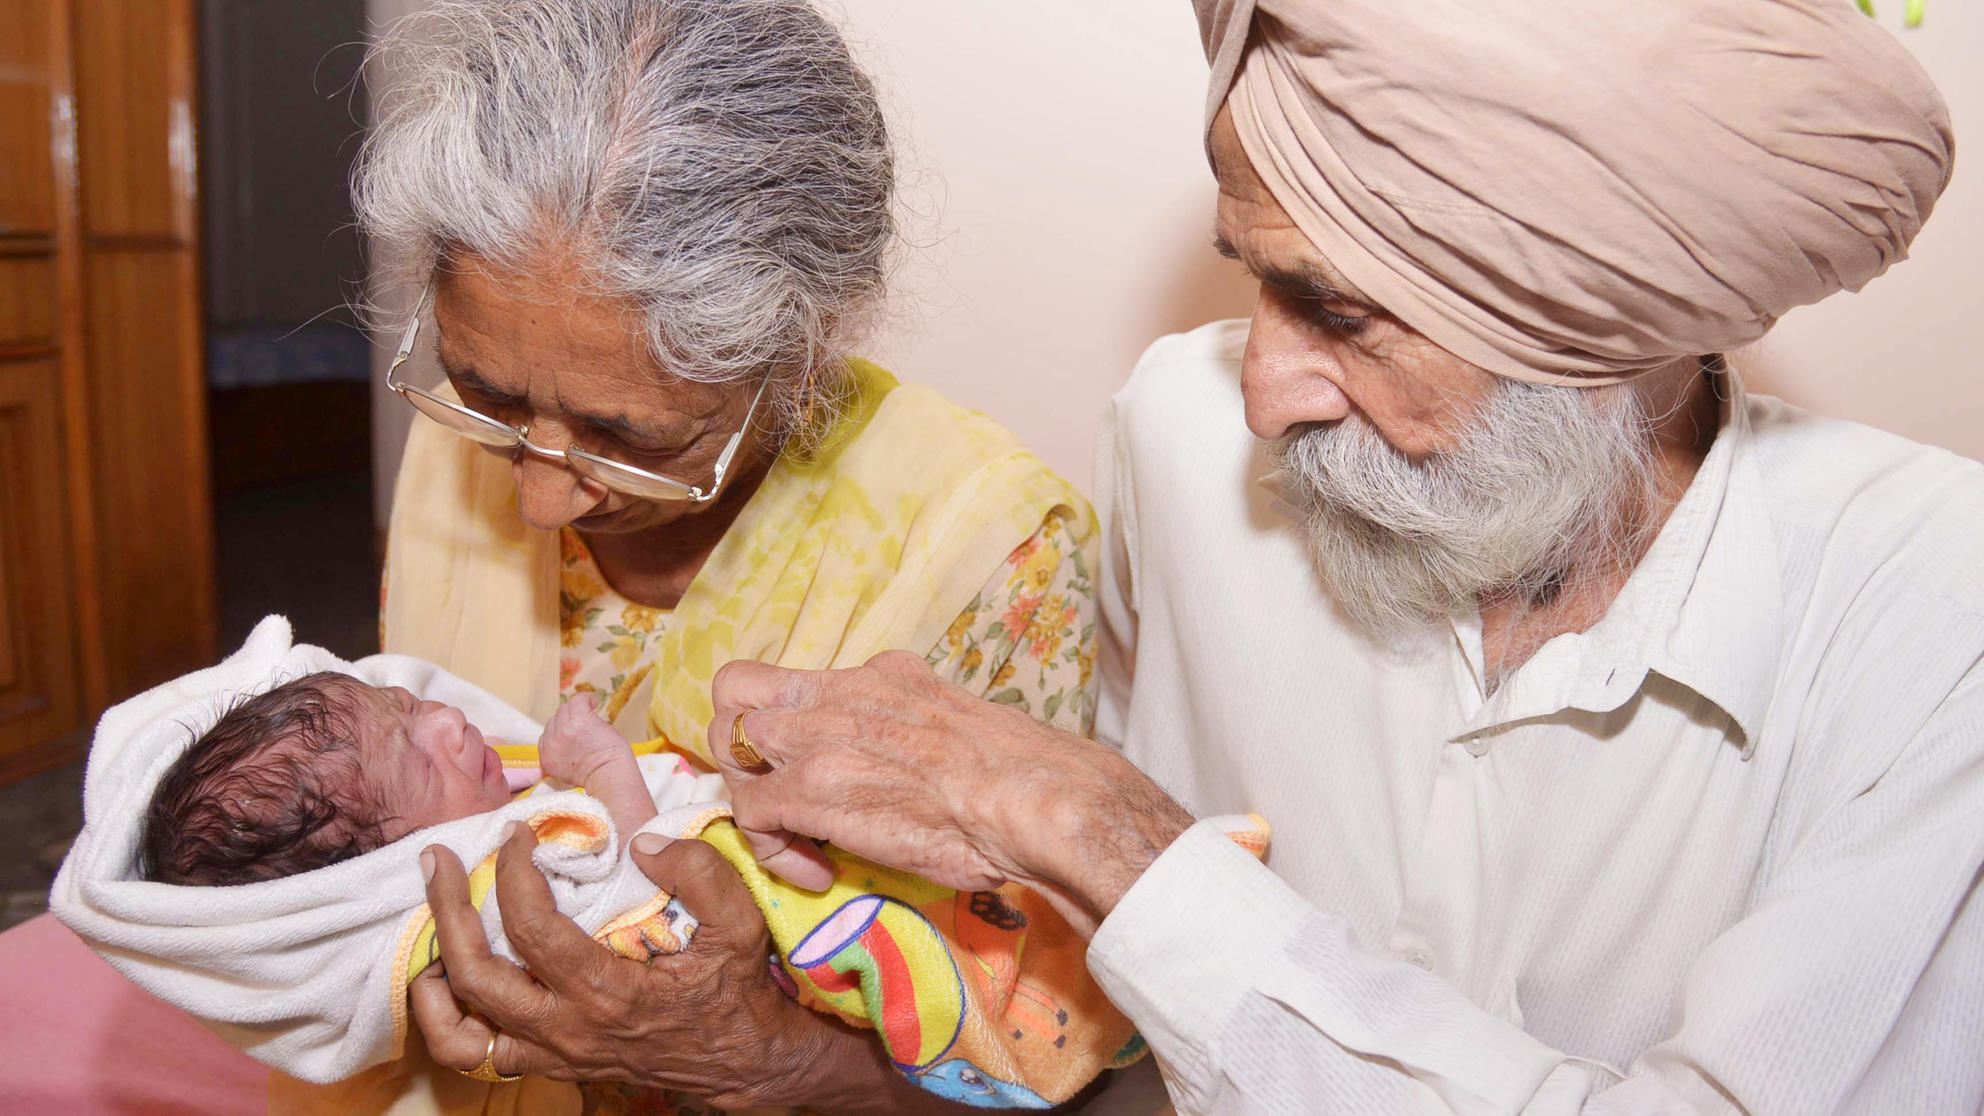 Indian parents Mohinder Singh Gill (R), 79, and Daljinder Kaur, 70, pose for a photograph as they hold their newborn baby boy Arman at their home in Amritsar on May 11, 2016. An Indian woman who gave birth at the age of 70 said May 10 she was not too old to become a first-time mother, adding that her life was now complete. Daljinder Kaur gave birth last month to a boy following two years of IVF treatment at a fertility clinic in the northern state of Haryana with her 79-year-old husband. / AFP / NARINDER NANU (Photo credit should read NARINDER NANU/AFP/Getty Images)